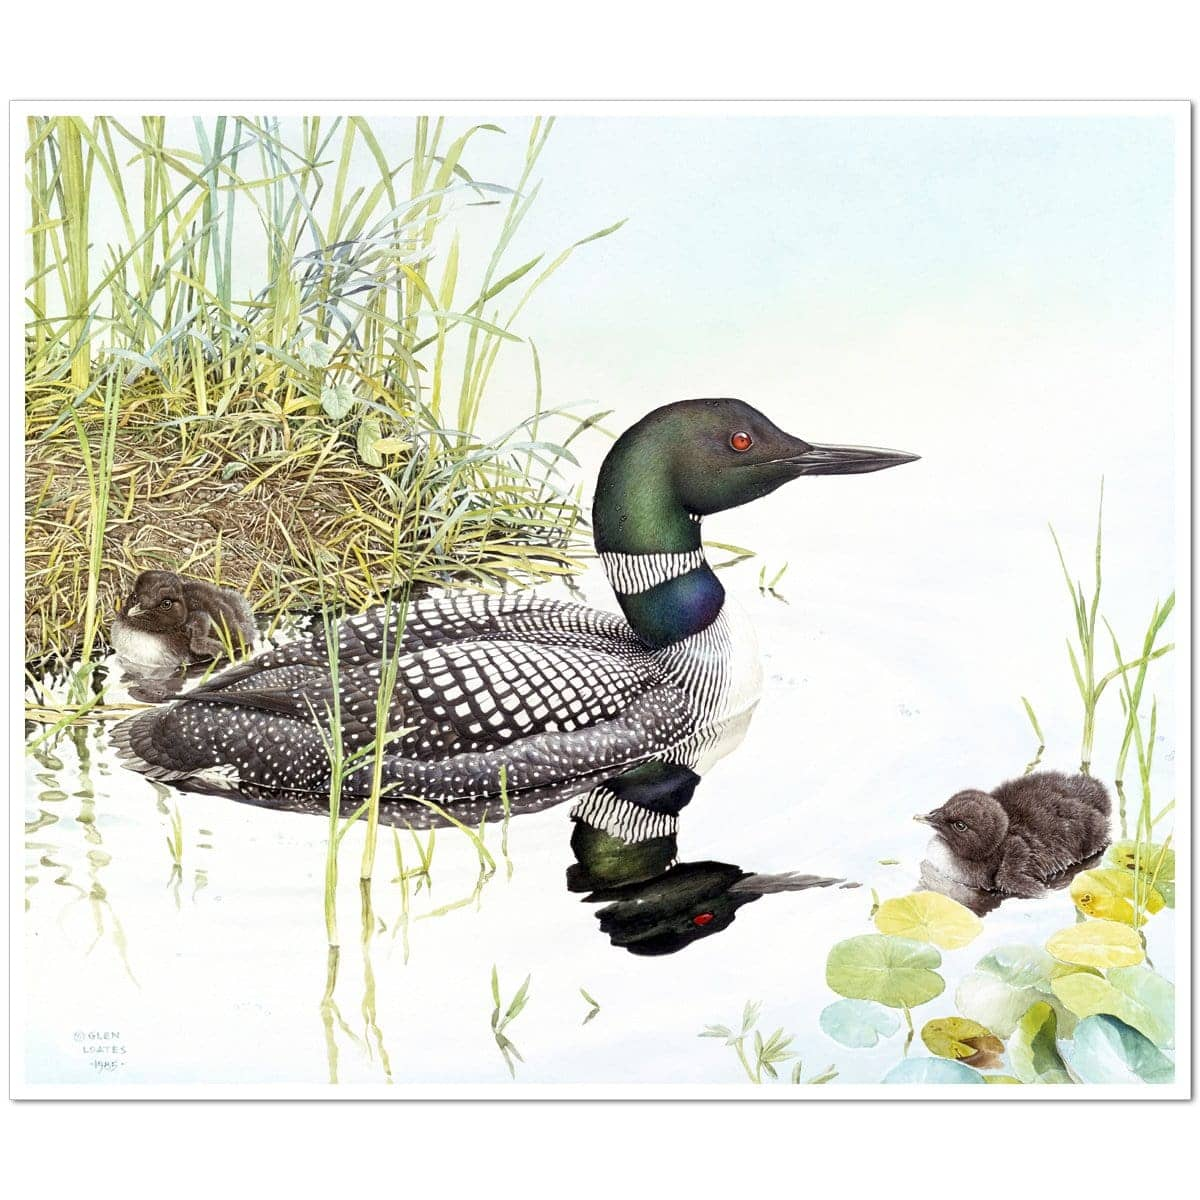 Loon with Young - Art Print